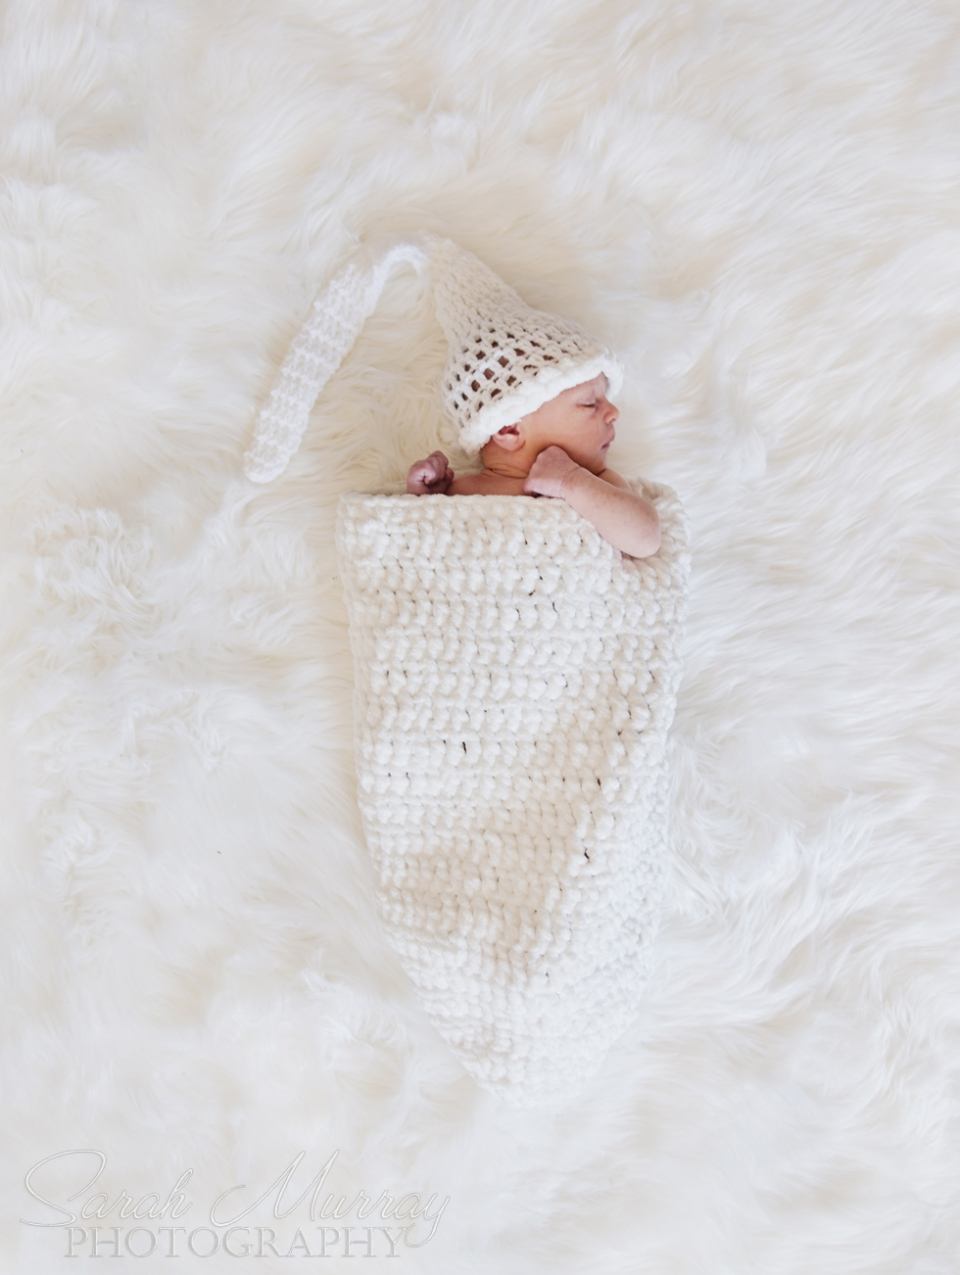 Baby Arriah Mae Newborn Session Cape Cod, Massachusetts - Sarah Murray Photography